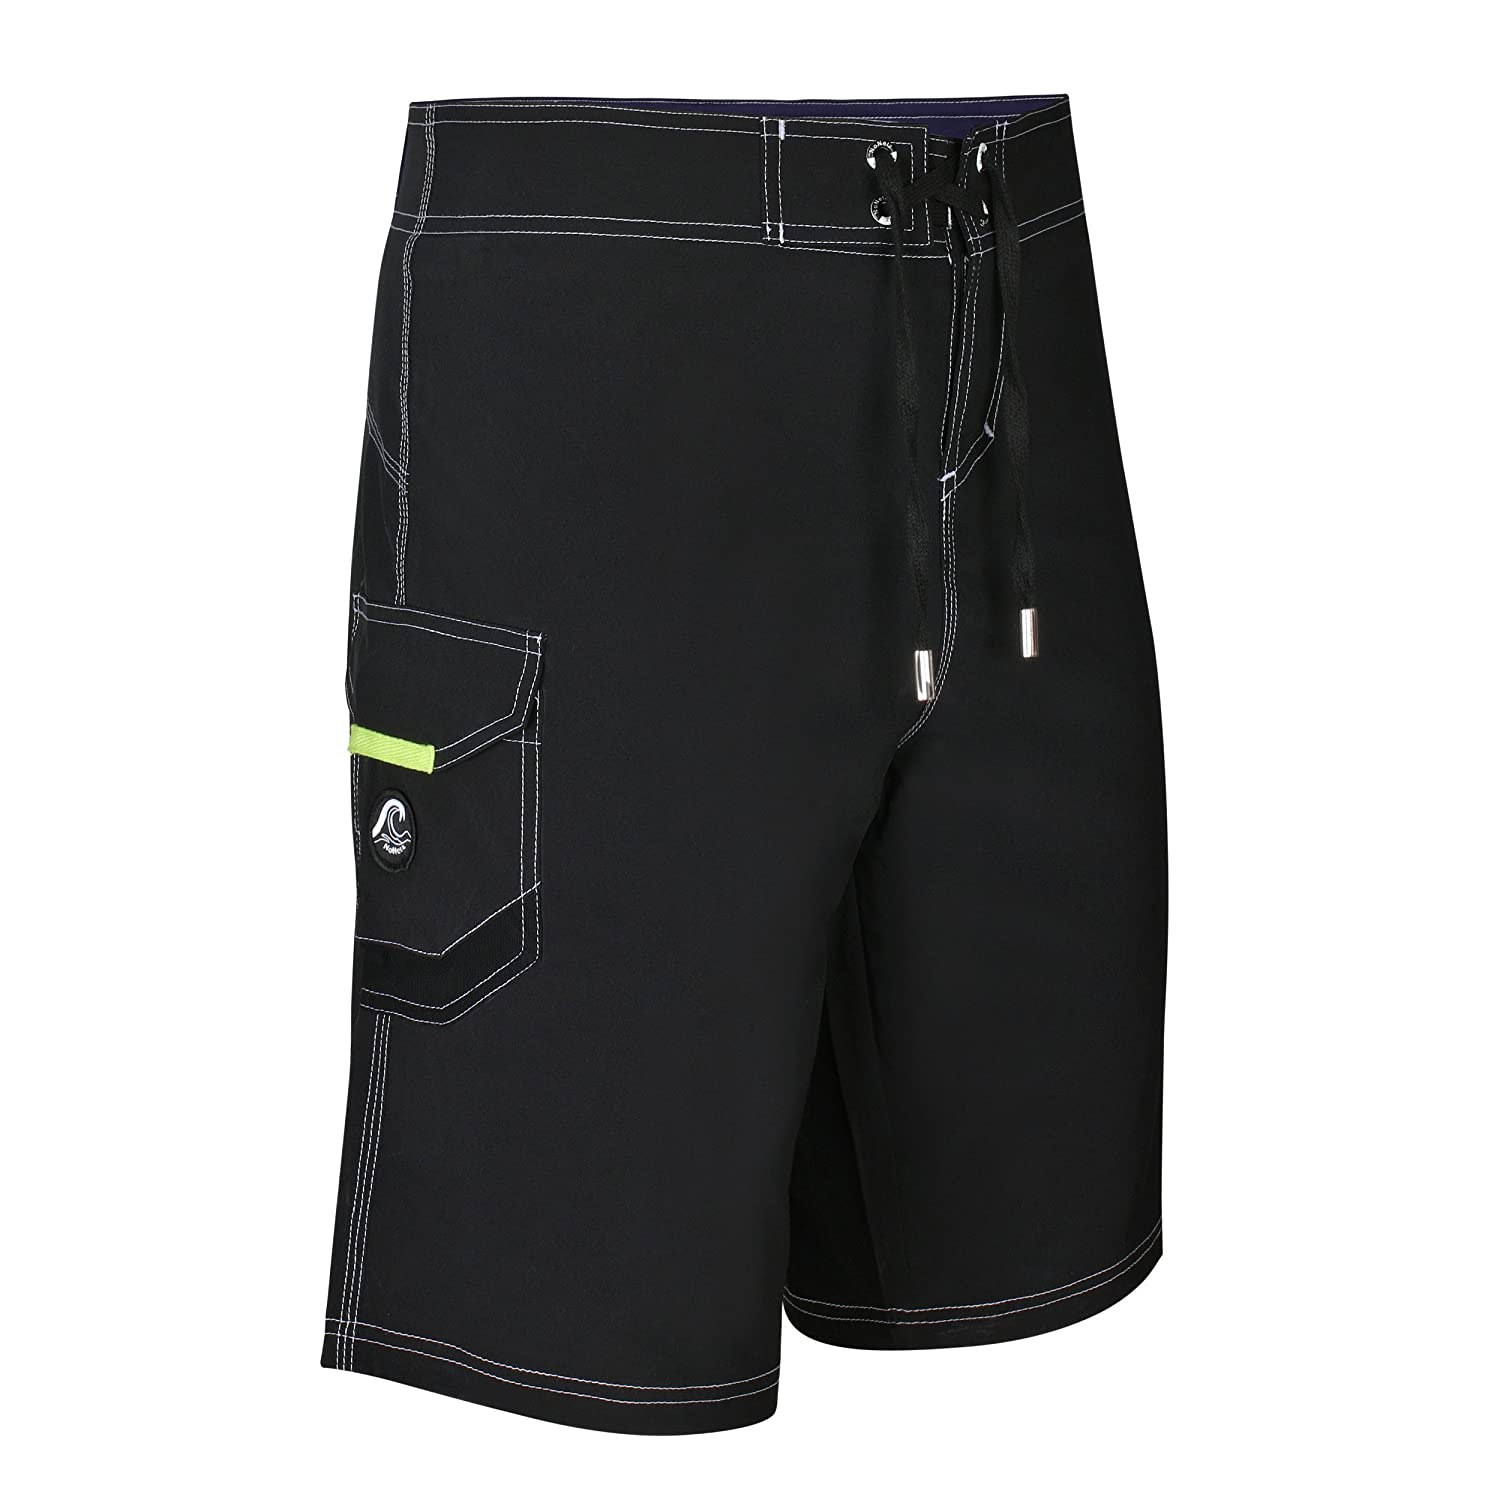 11b53f50a582f NoNetz Men's Anti Chafe Black Men's Boardshorts Prevents The Inner Thigh  Rash Black Large | Amazon.com